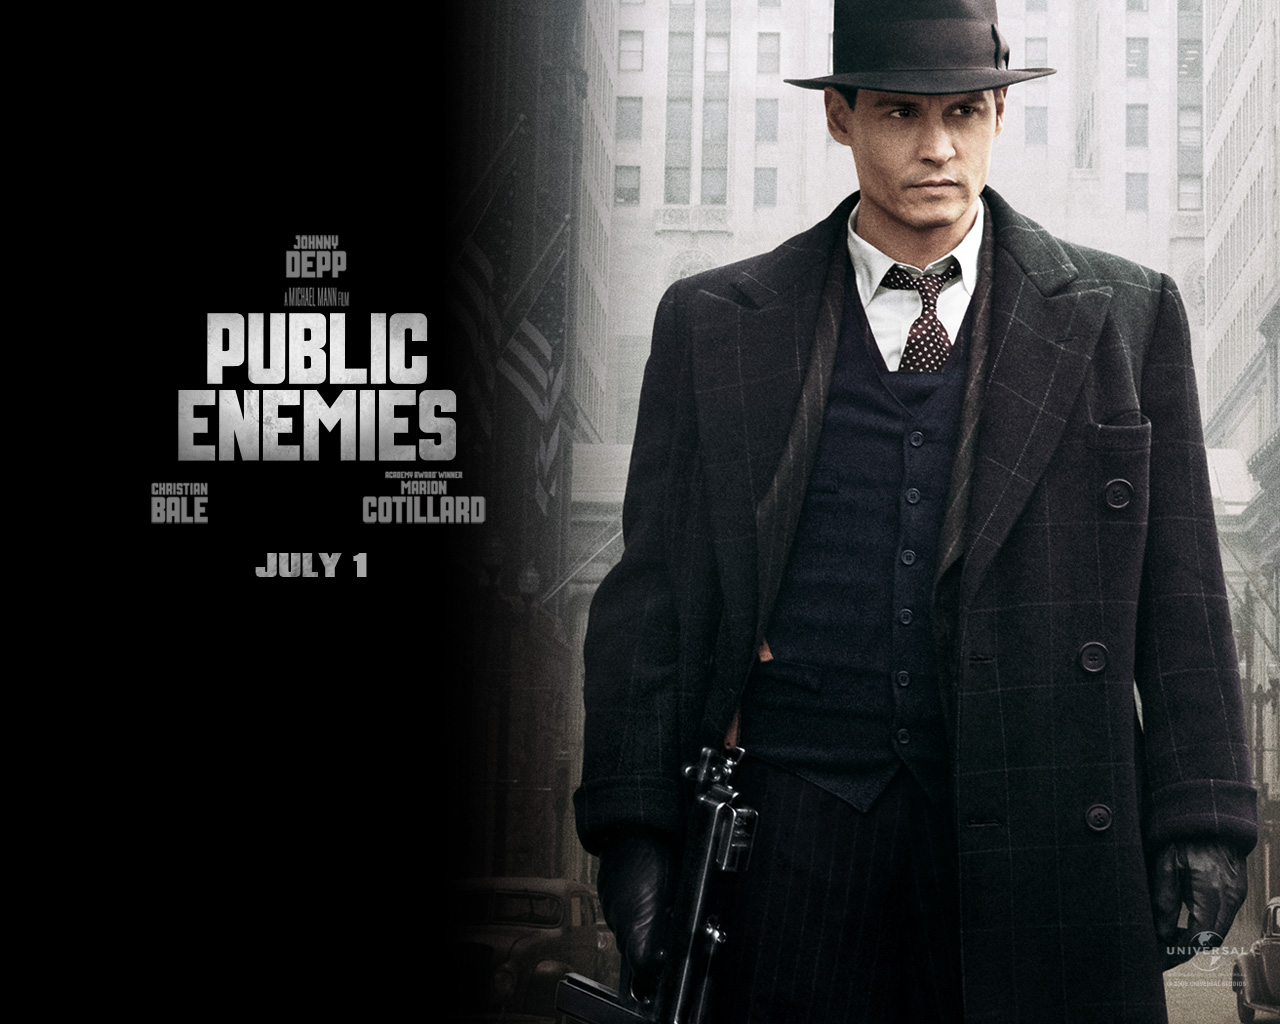 public_enemies_suit0005.jpg